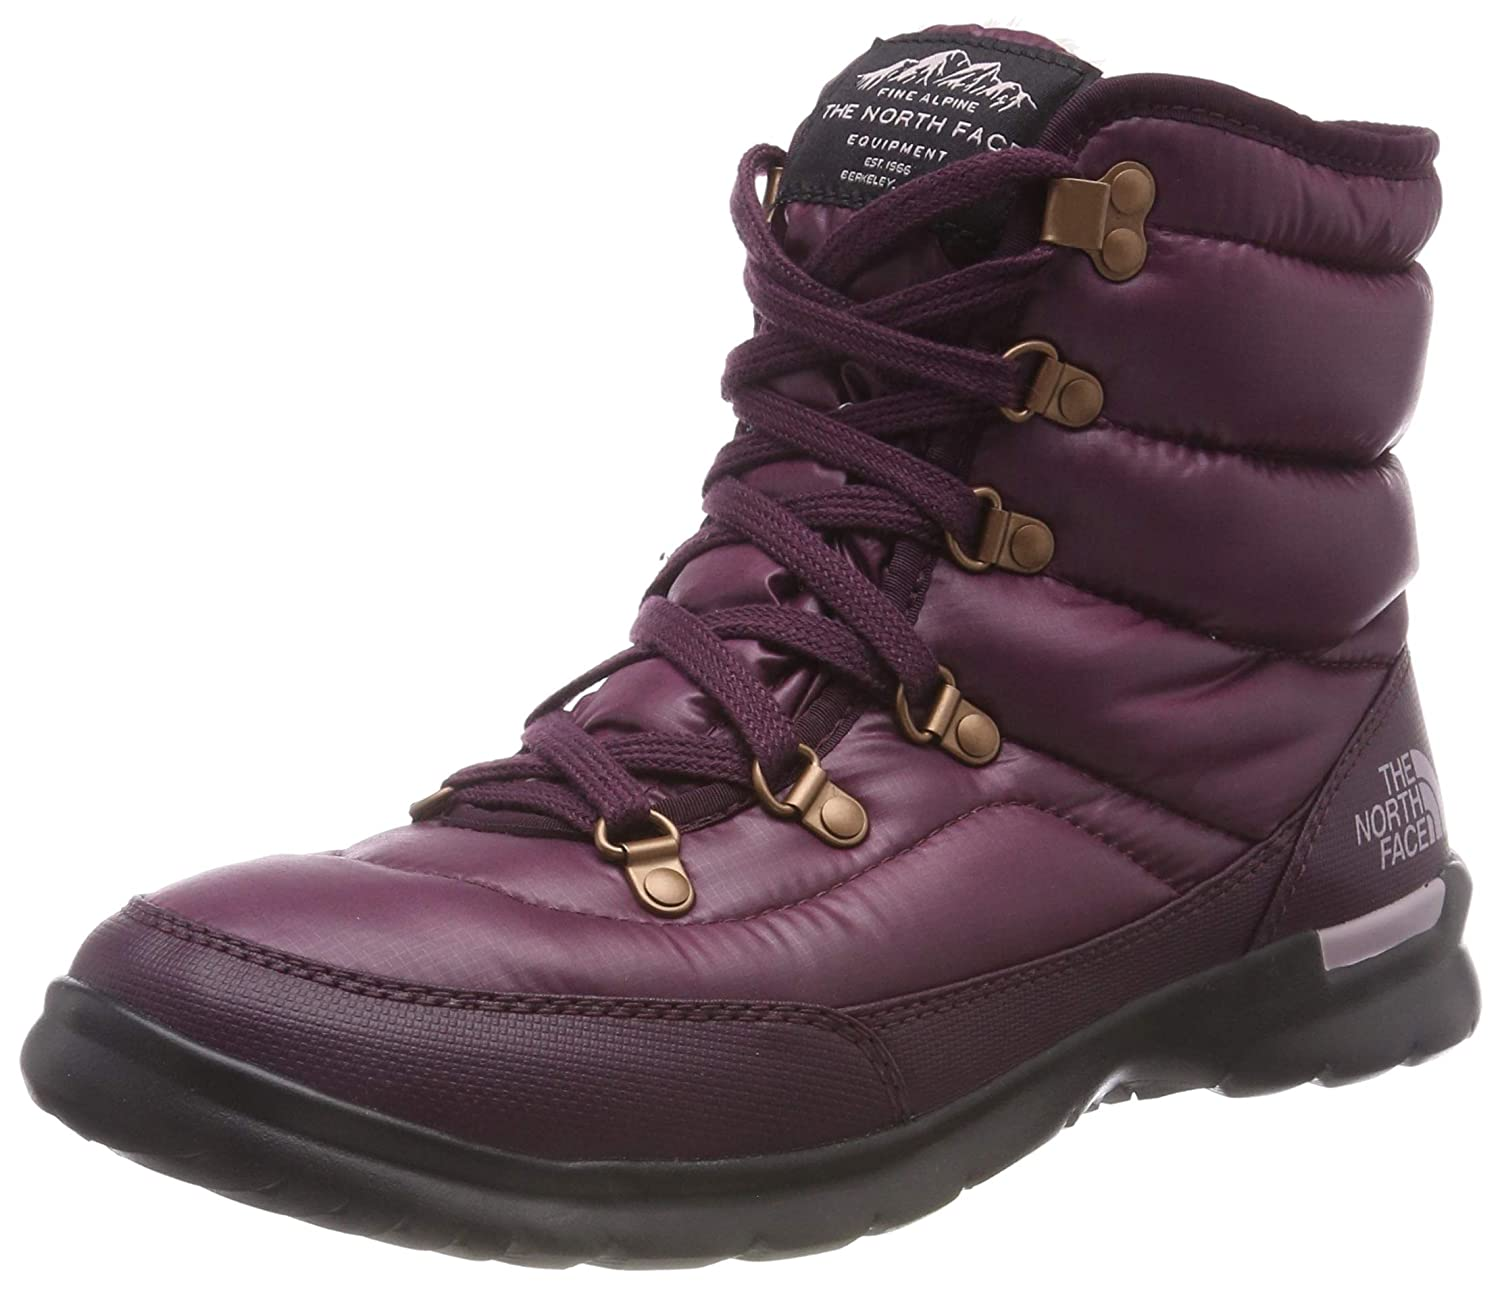 The North Face Thermoball Lace II, Stiefel de Nieve para damen braun (Shiny Fig Vintage Weiß 5ug)